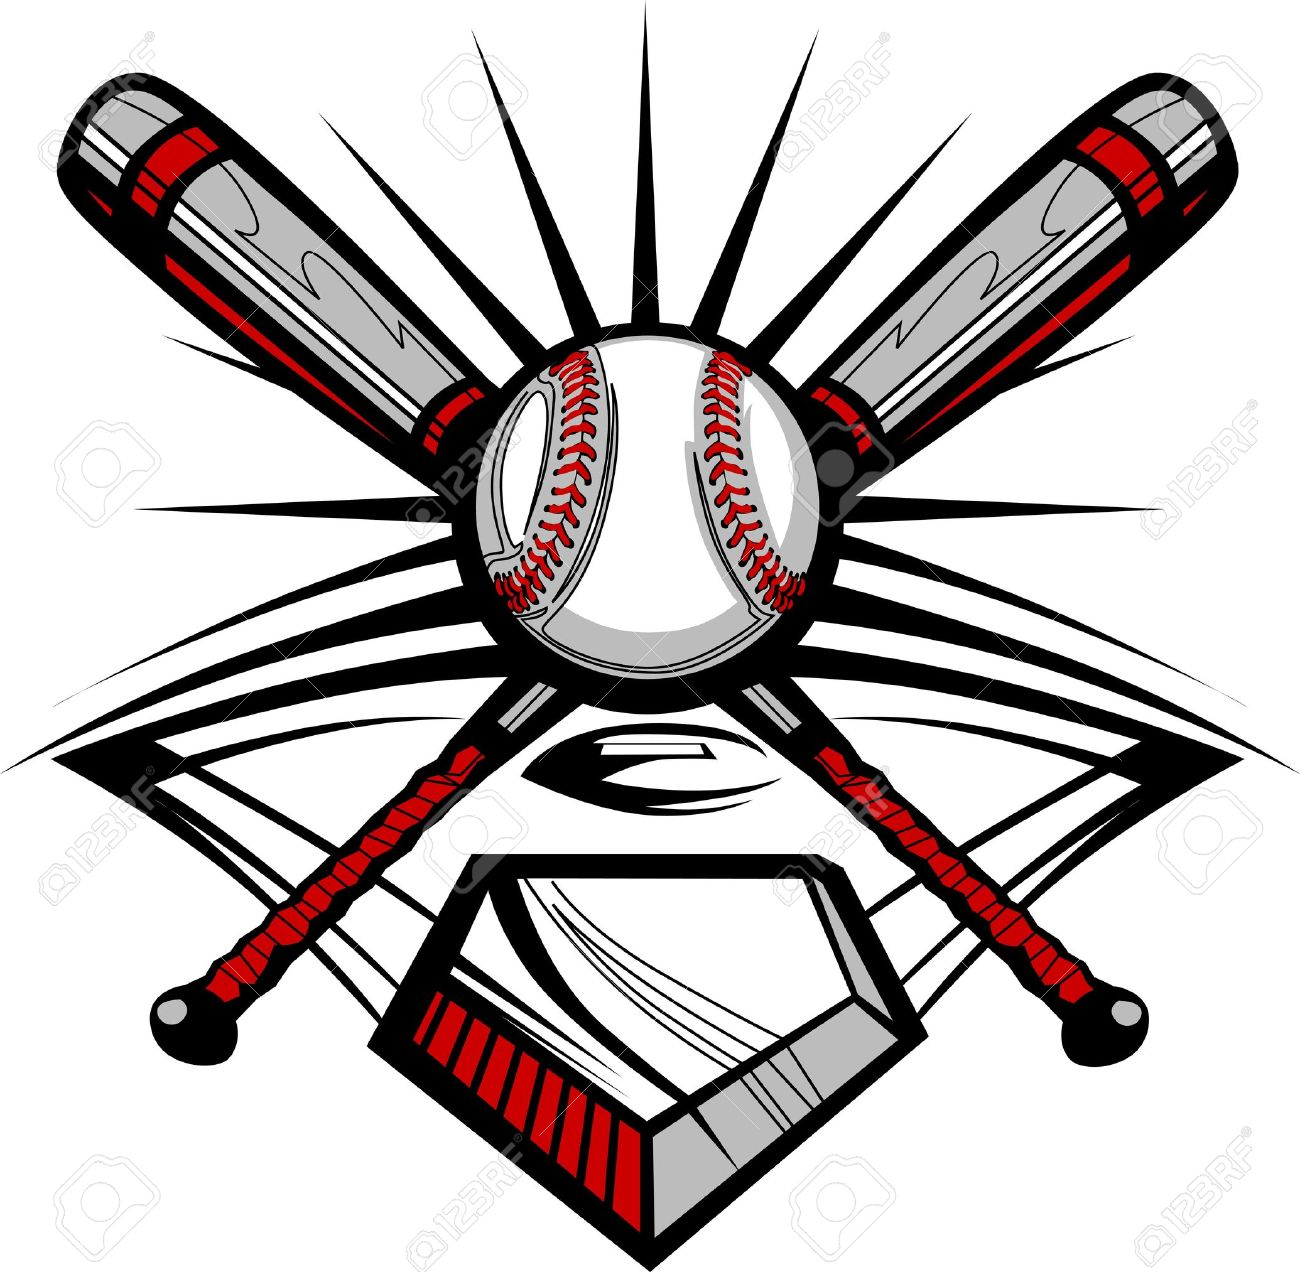 Baseball Or Softball Crossed Bats With Ball Image Template Royalty ...